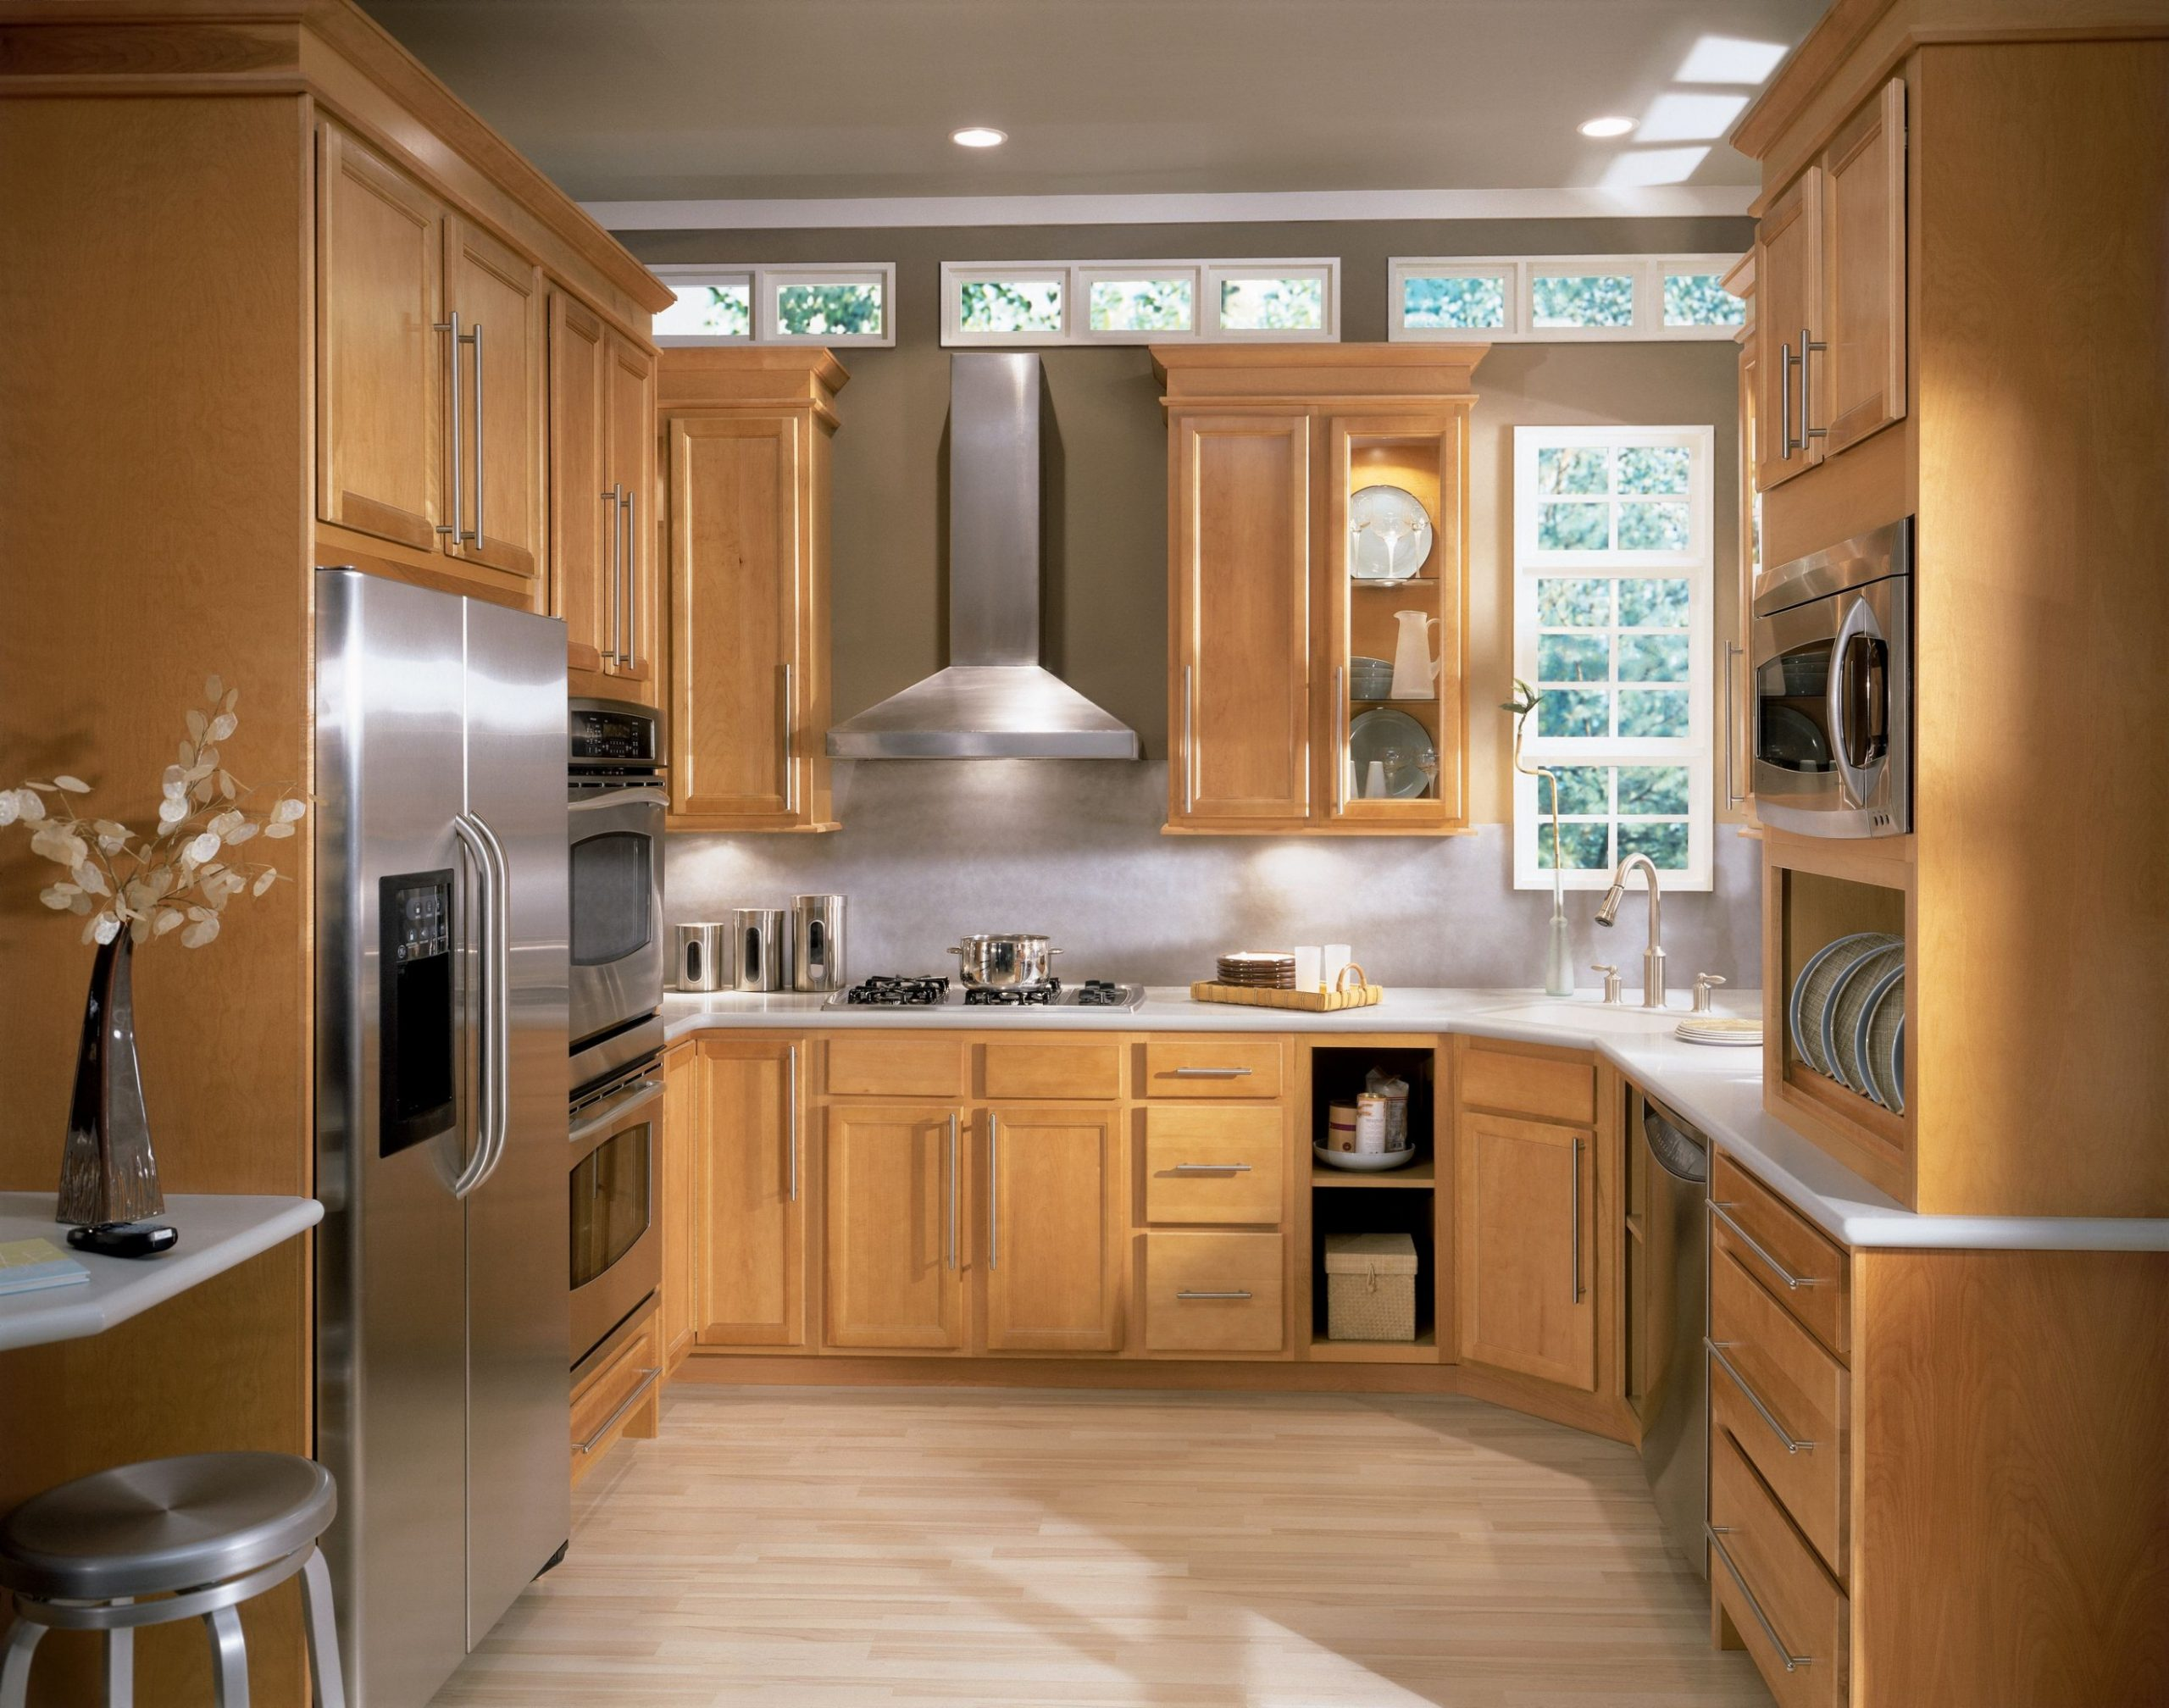 Sinclair Birch cabinet doors feature a narrow rail, flat center  - Birch Kitchen Cabinet Doors